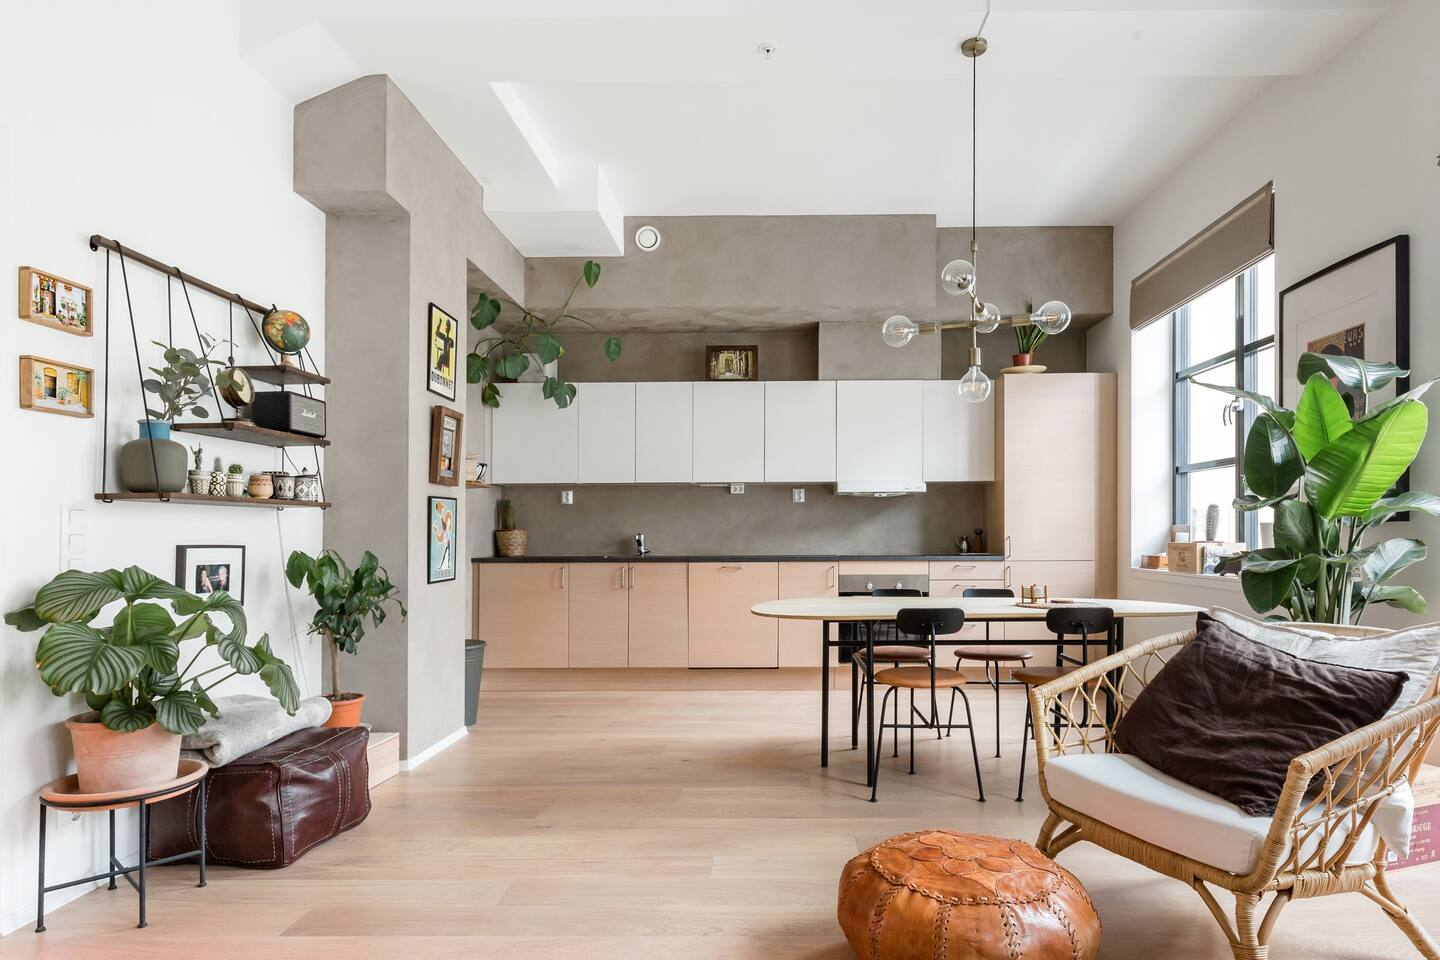 Best Unique Airbnb in Oslo Norway